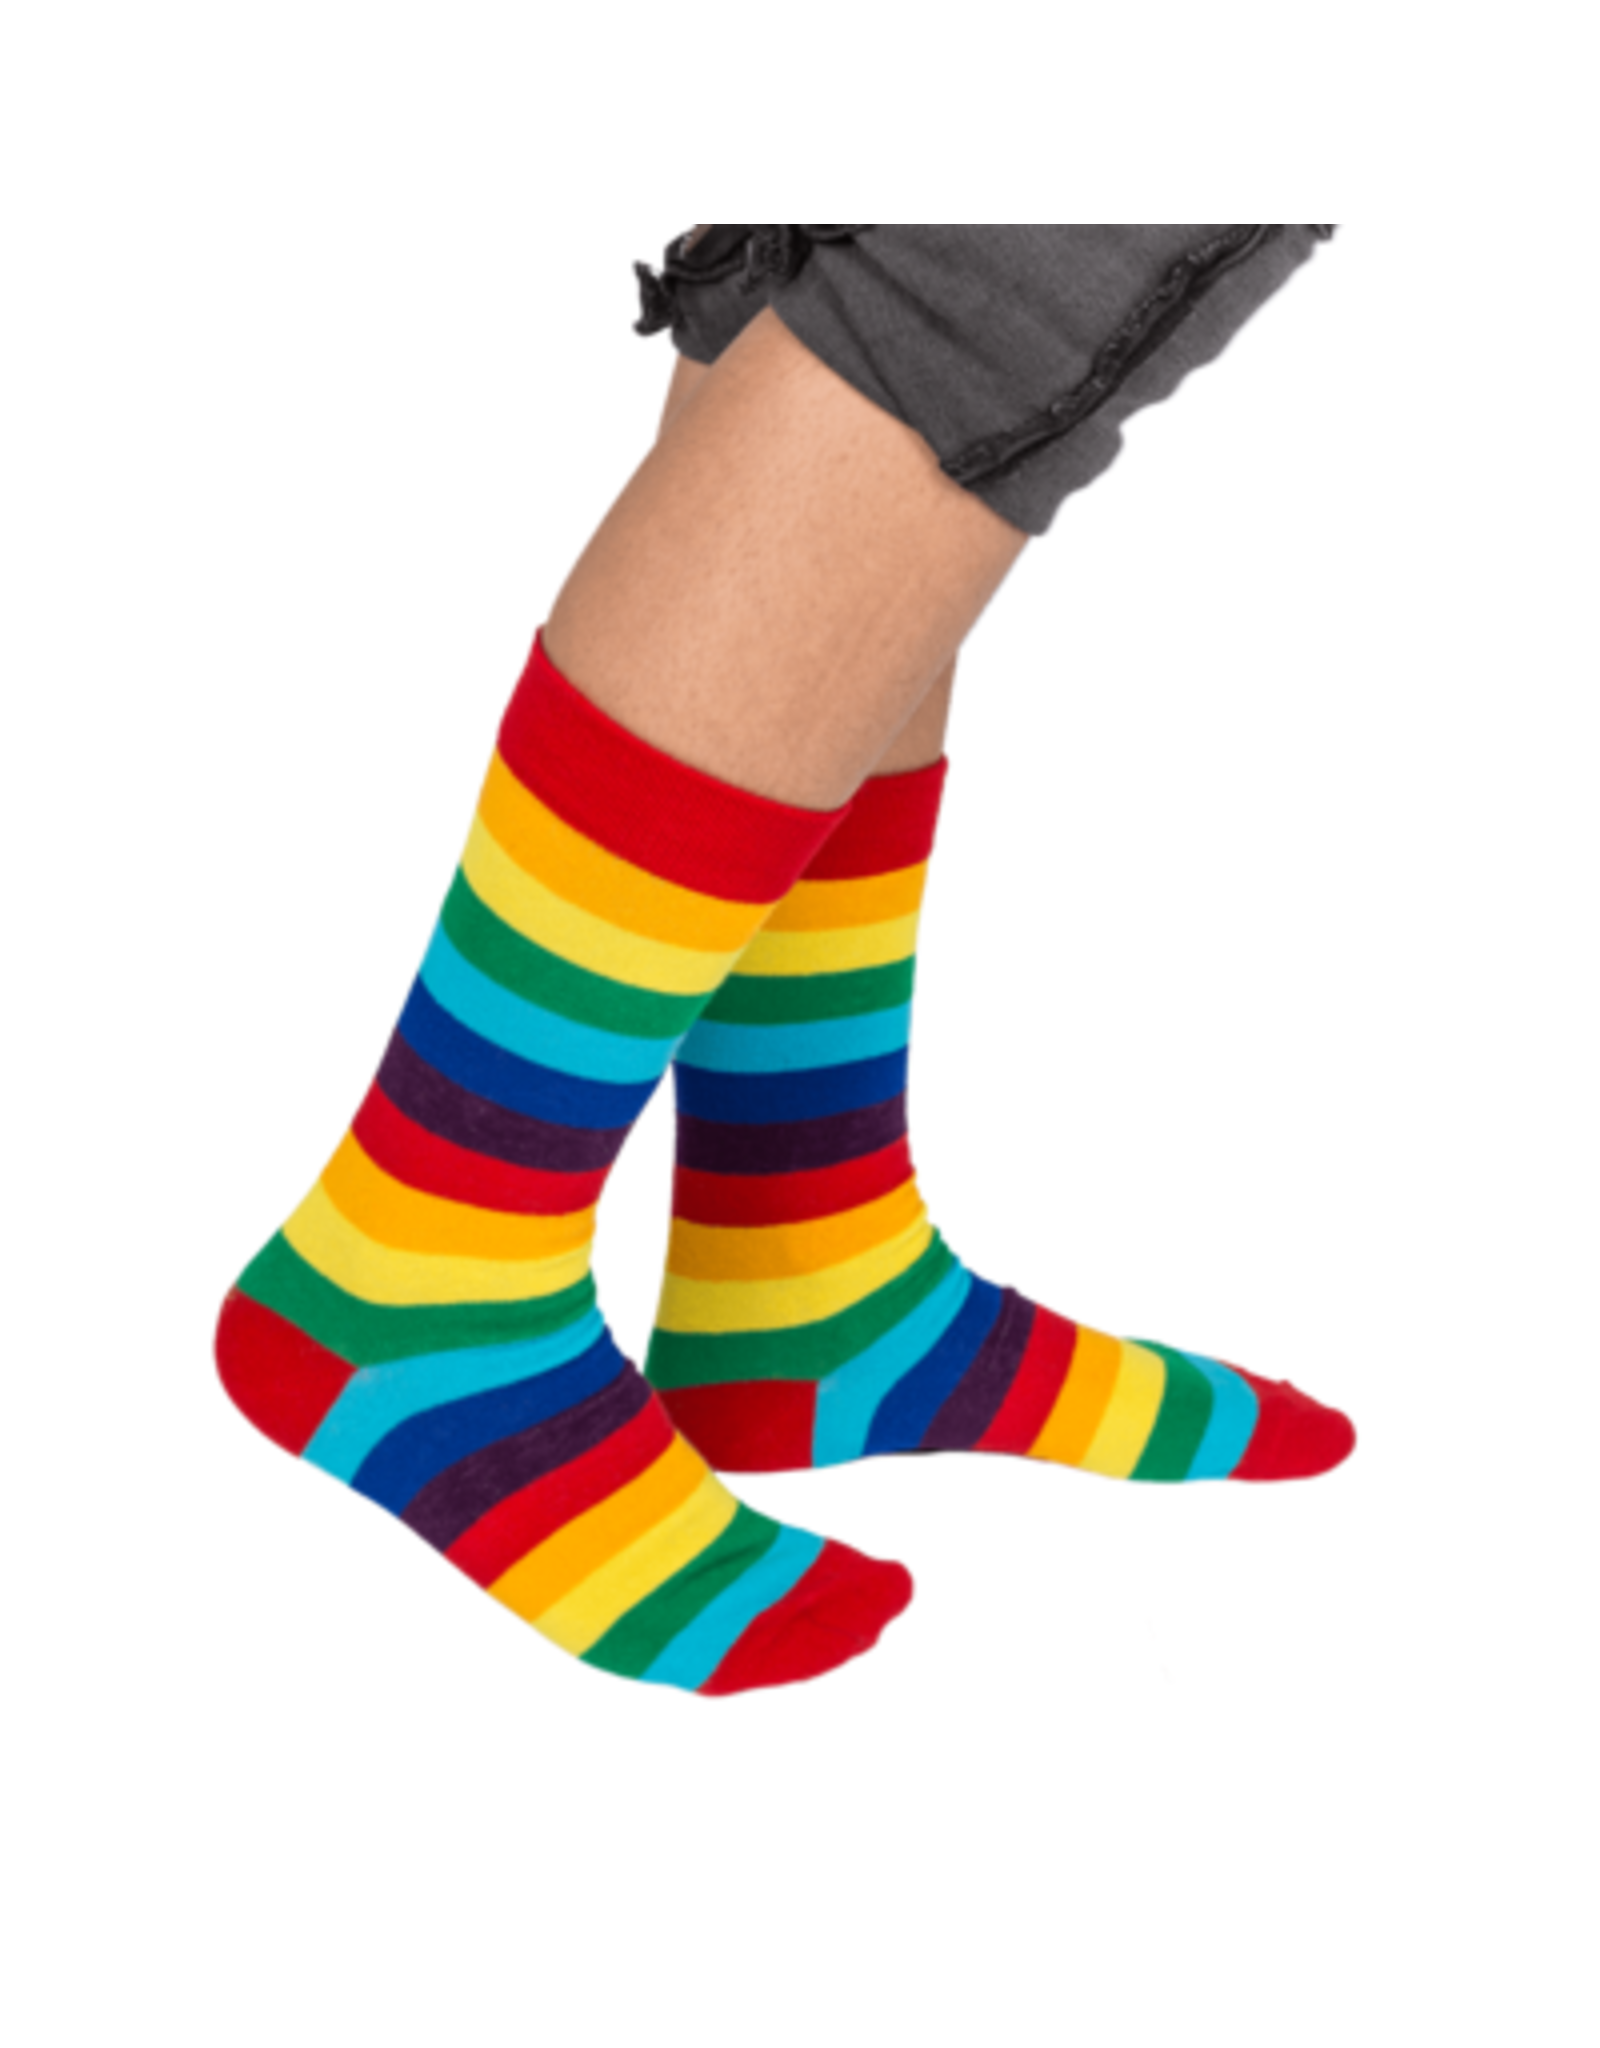 Out Of The Blue rainbow stockings in can